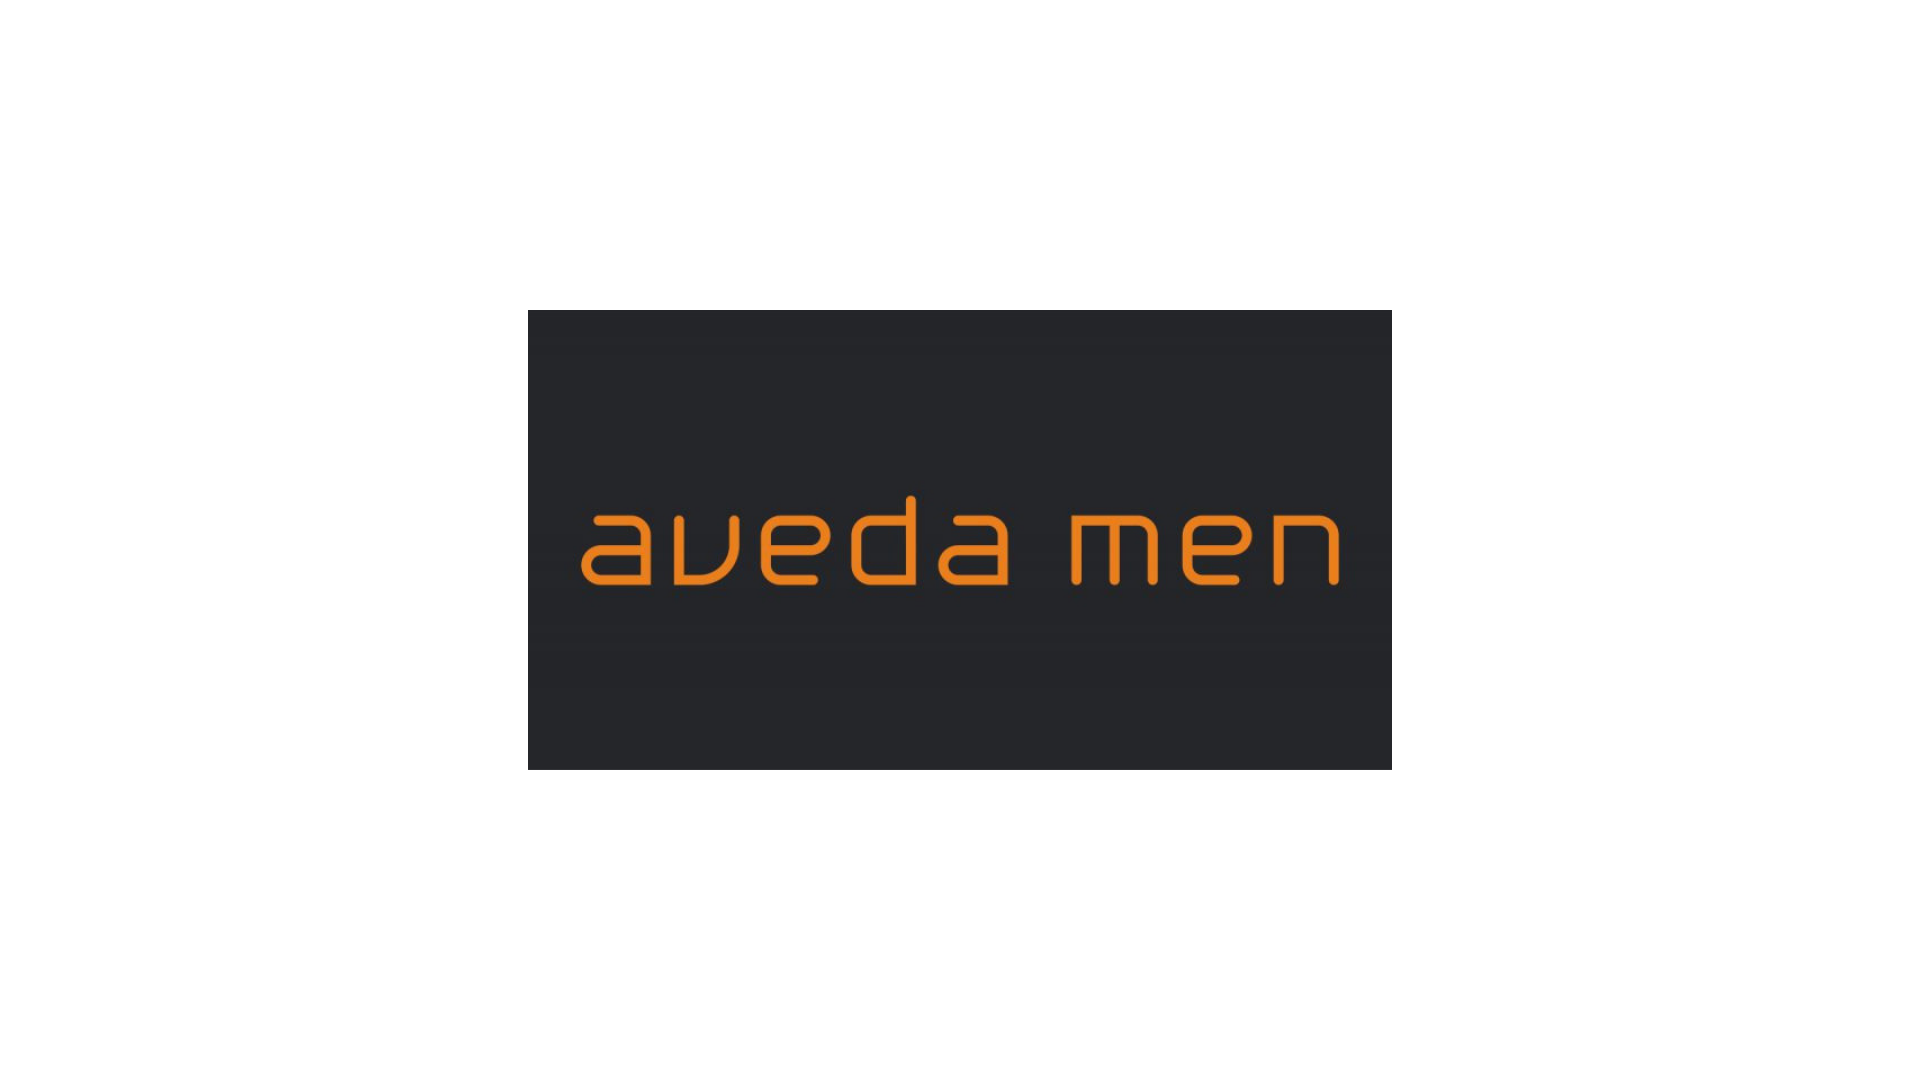 Aveda men.png